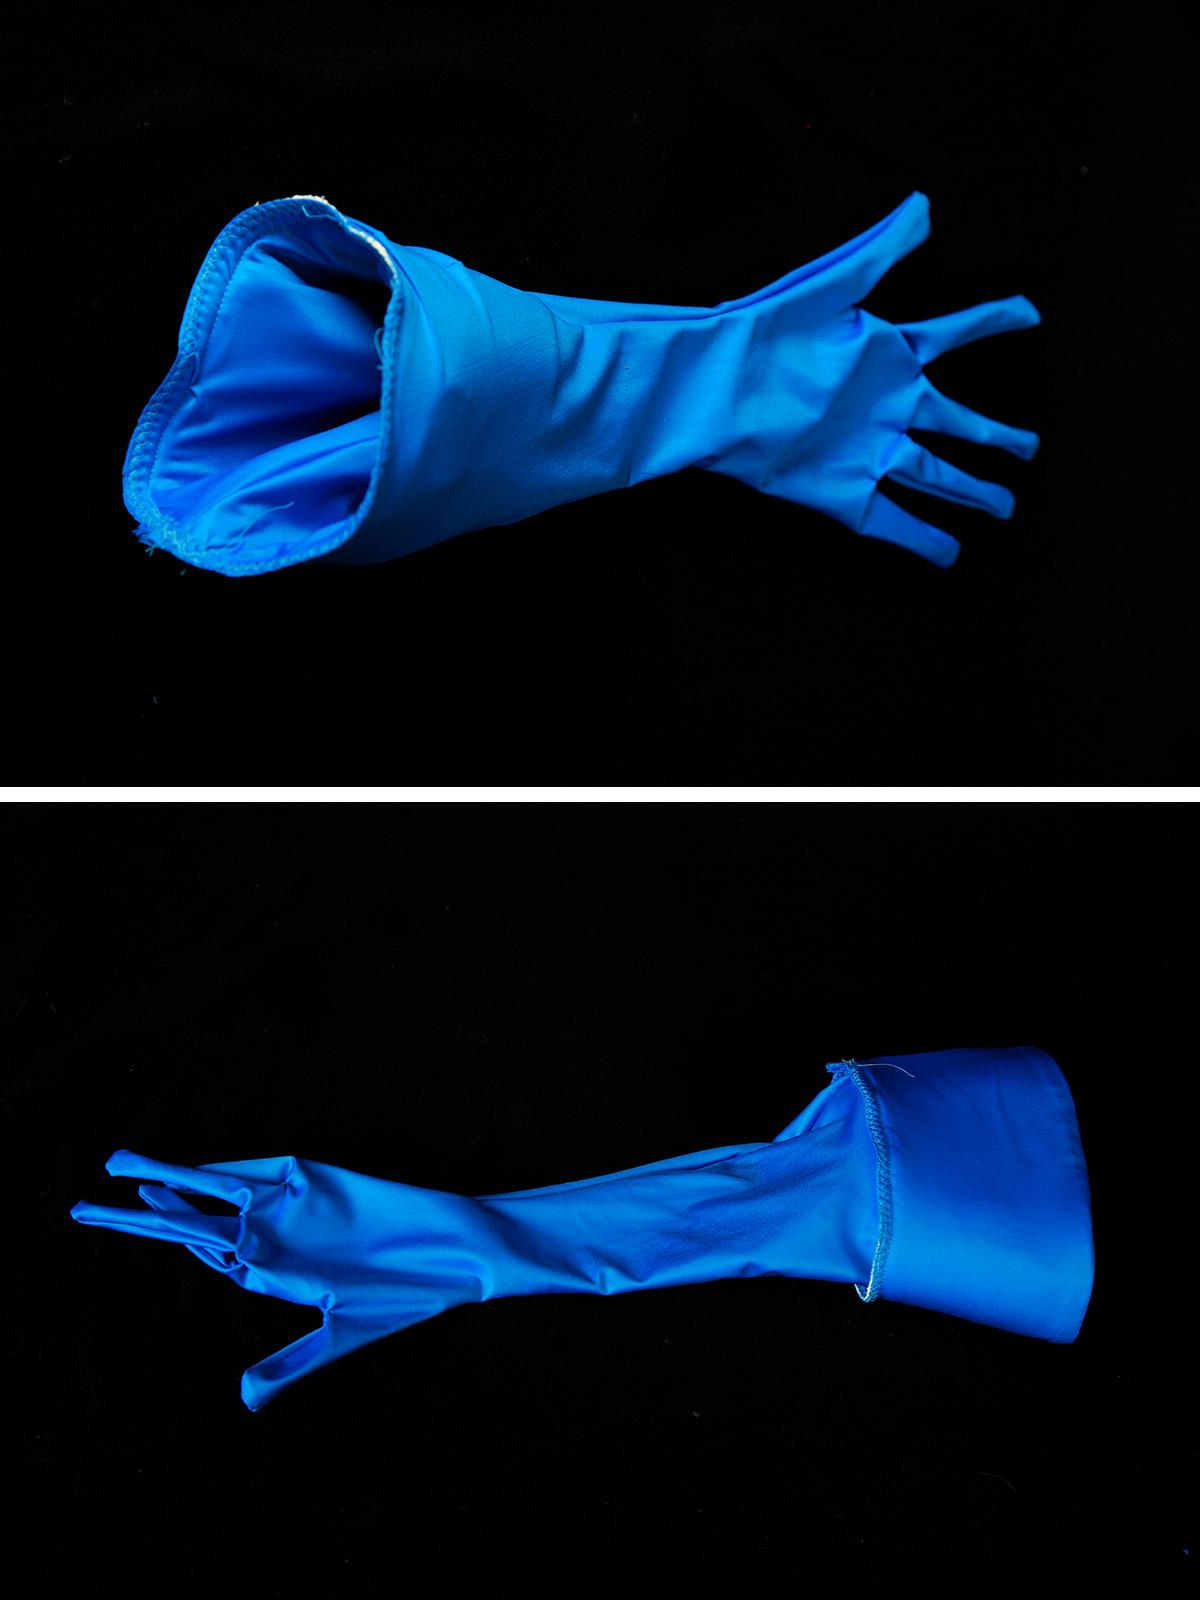 A two part compilation image showing the glove with the cuff still inside, and with the cuff pulled out.